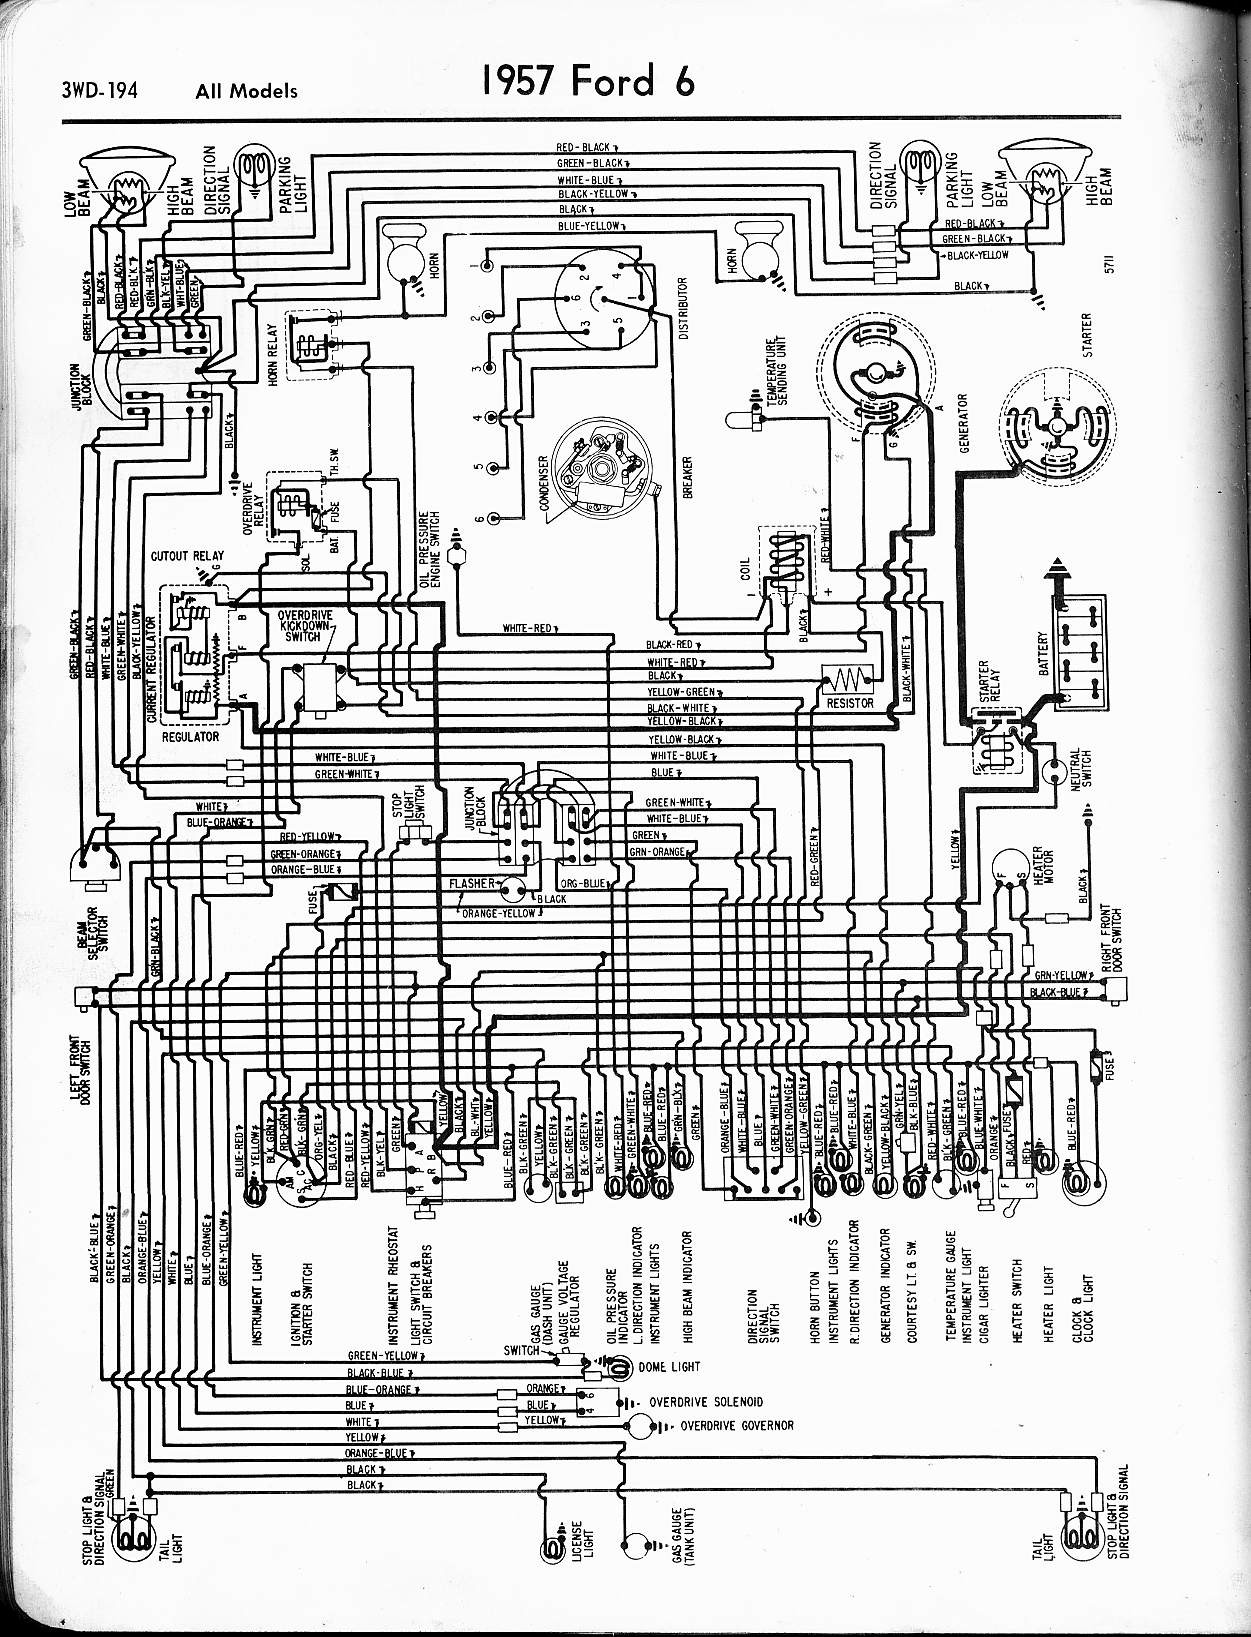 hight resolution of ford f250 parts diagram 1957 ford wiring diagram wiring data of ford f250 parts diagram zetec